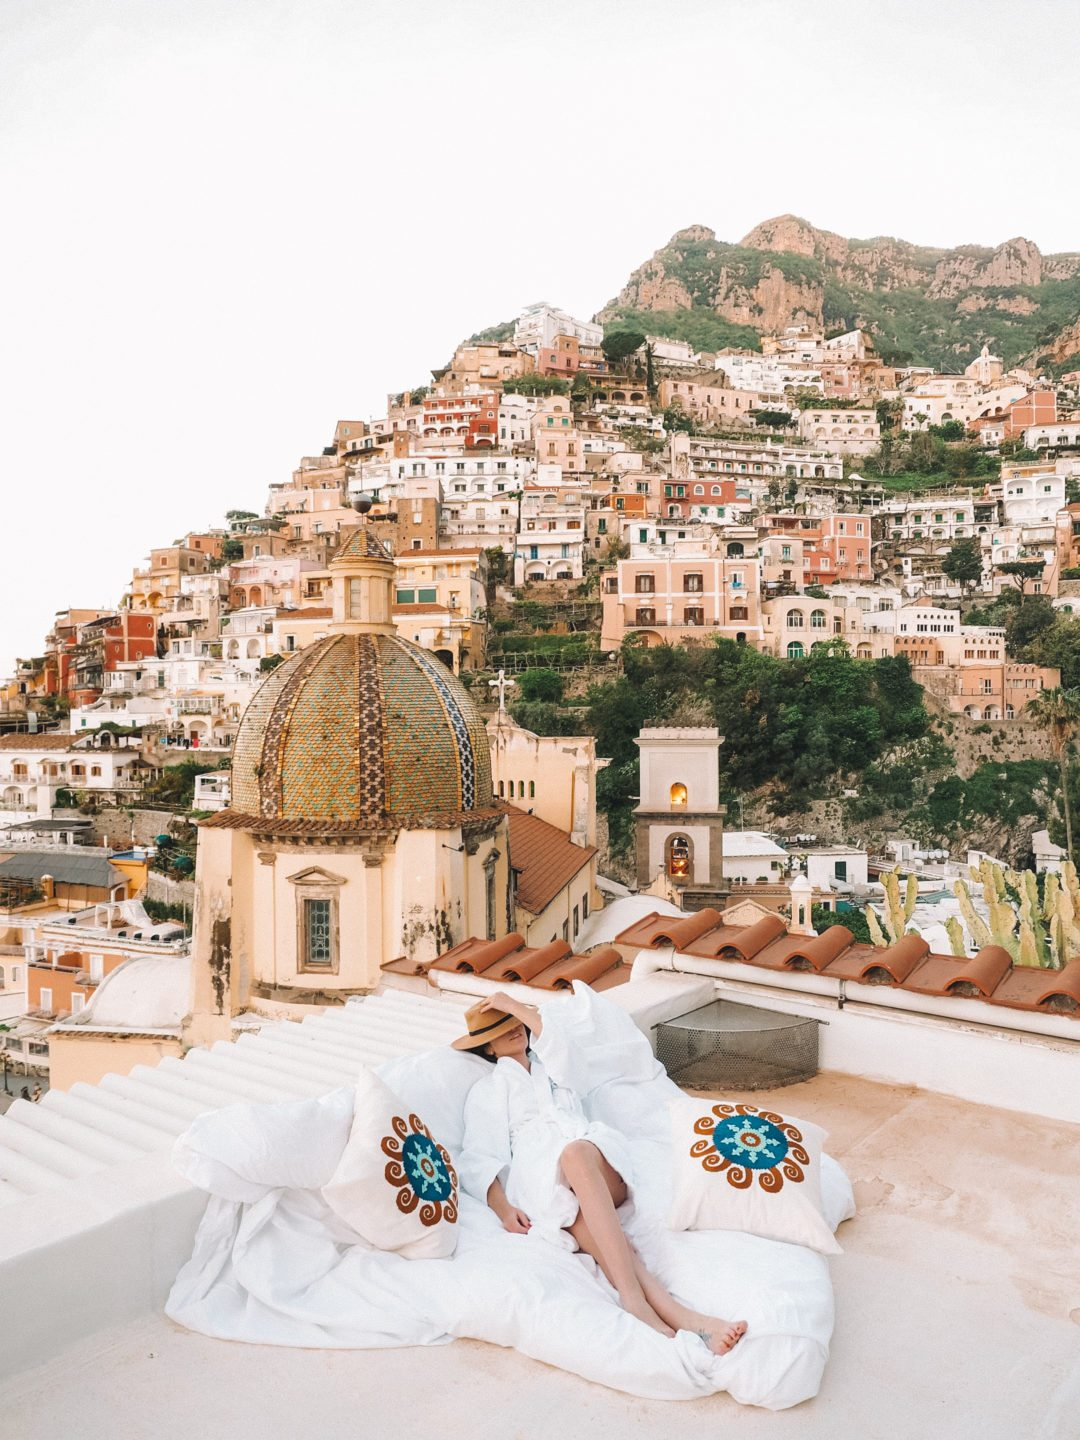 The Amalfi Coast Map Towns to Visit WORLD OF WANDERLUST